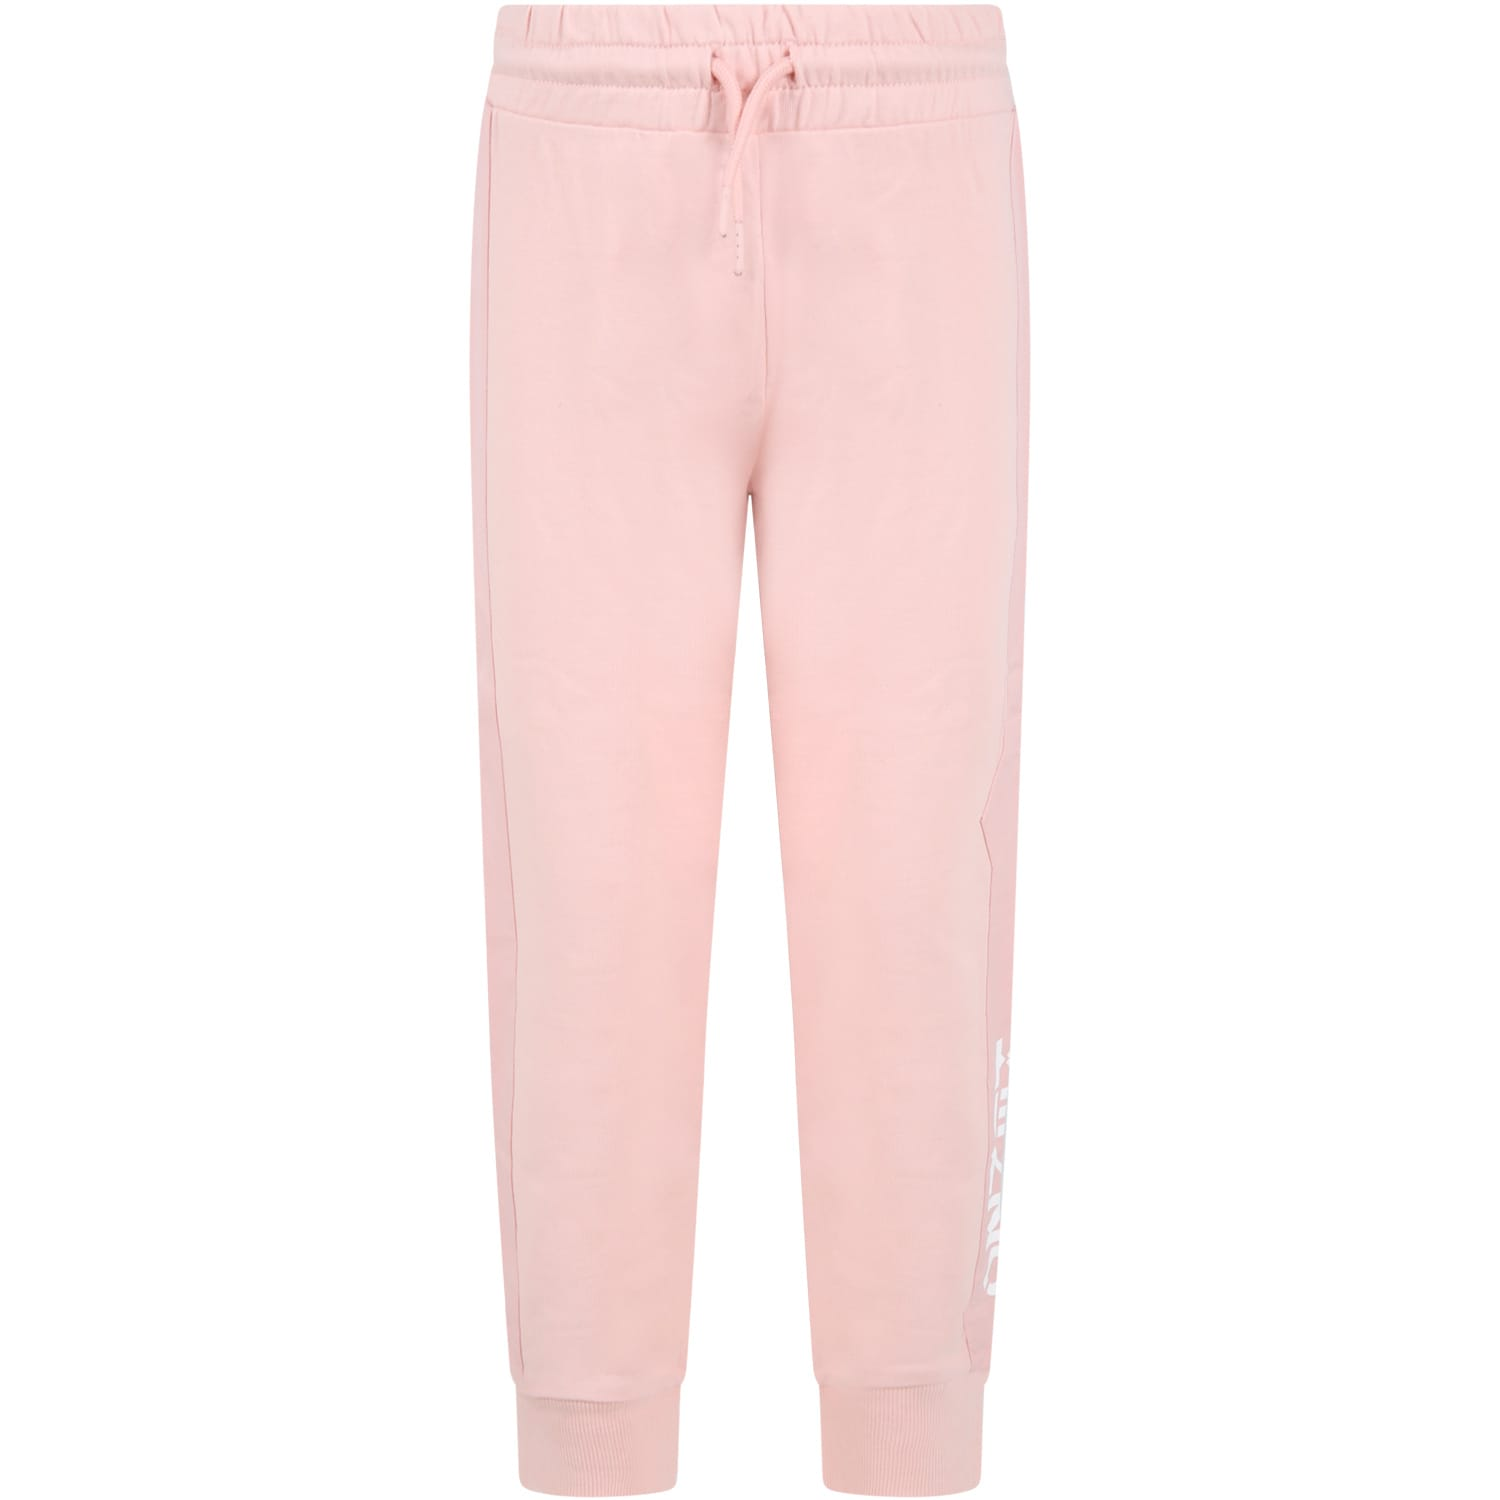 Pink Sweatpant For Girl With Logo